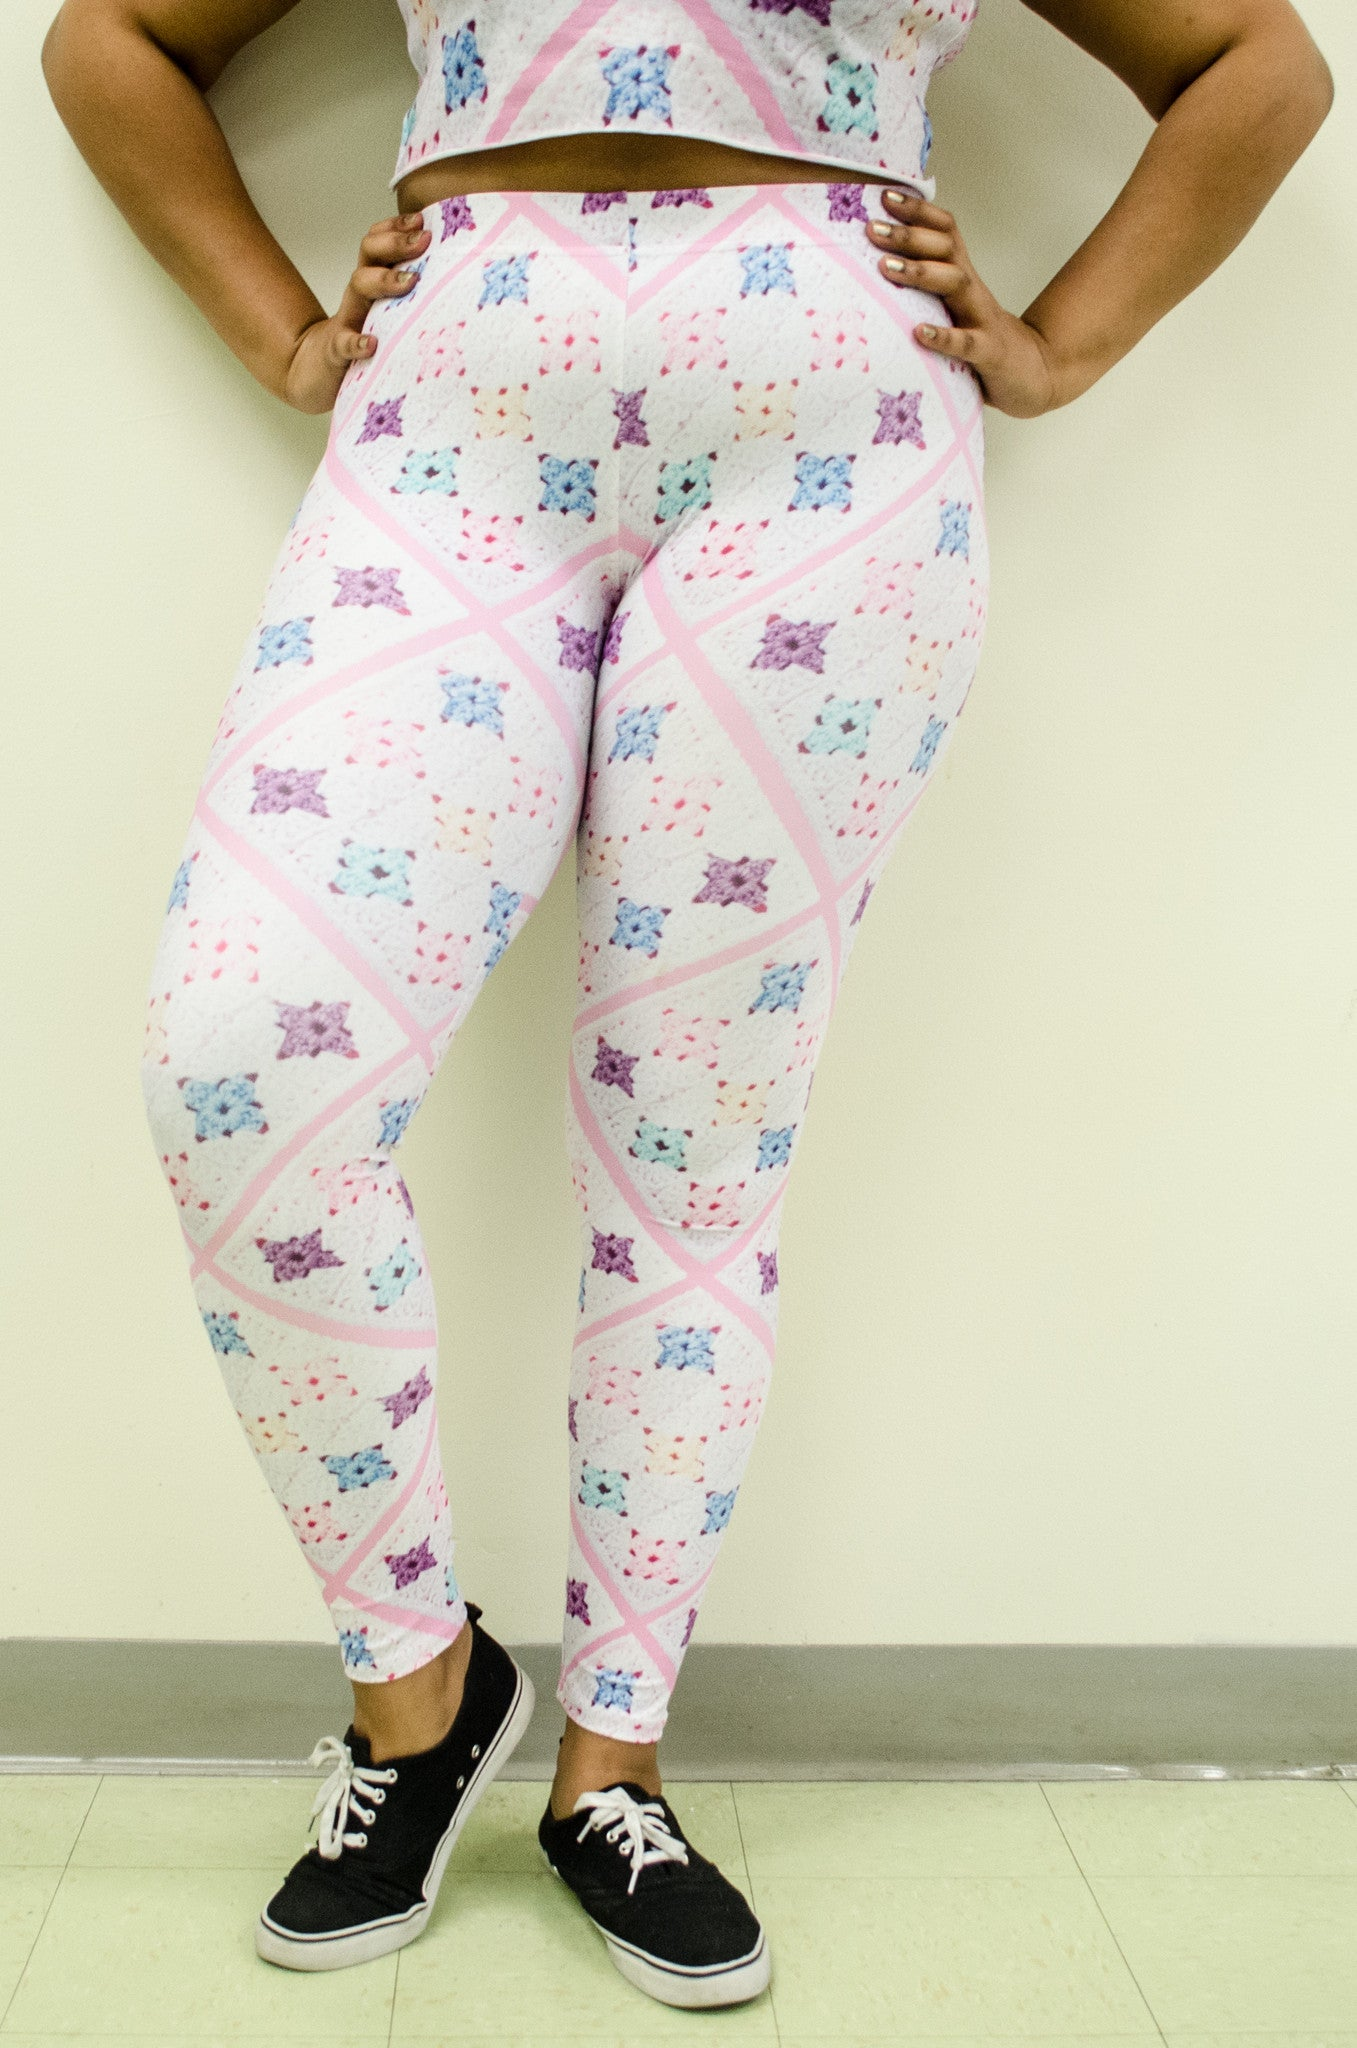 Snapdragon Brand Clothing Granny Square Crochet Print pink and white leggings in style Pretty Baby features a Melanie Martinez boho feel and a pastel rainbow of colors. Made of comfortable spandex.